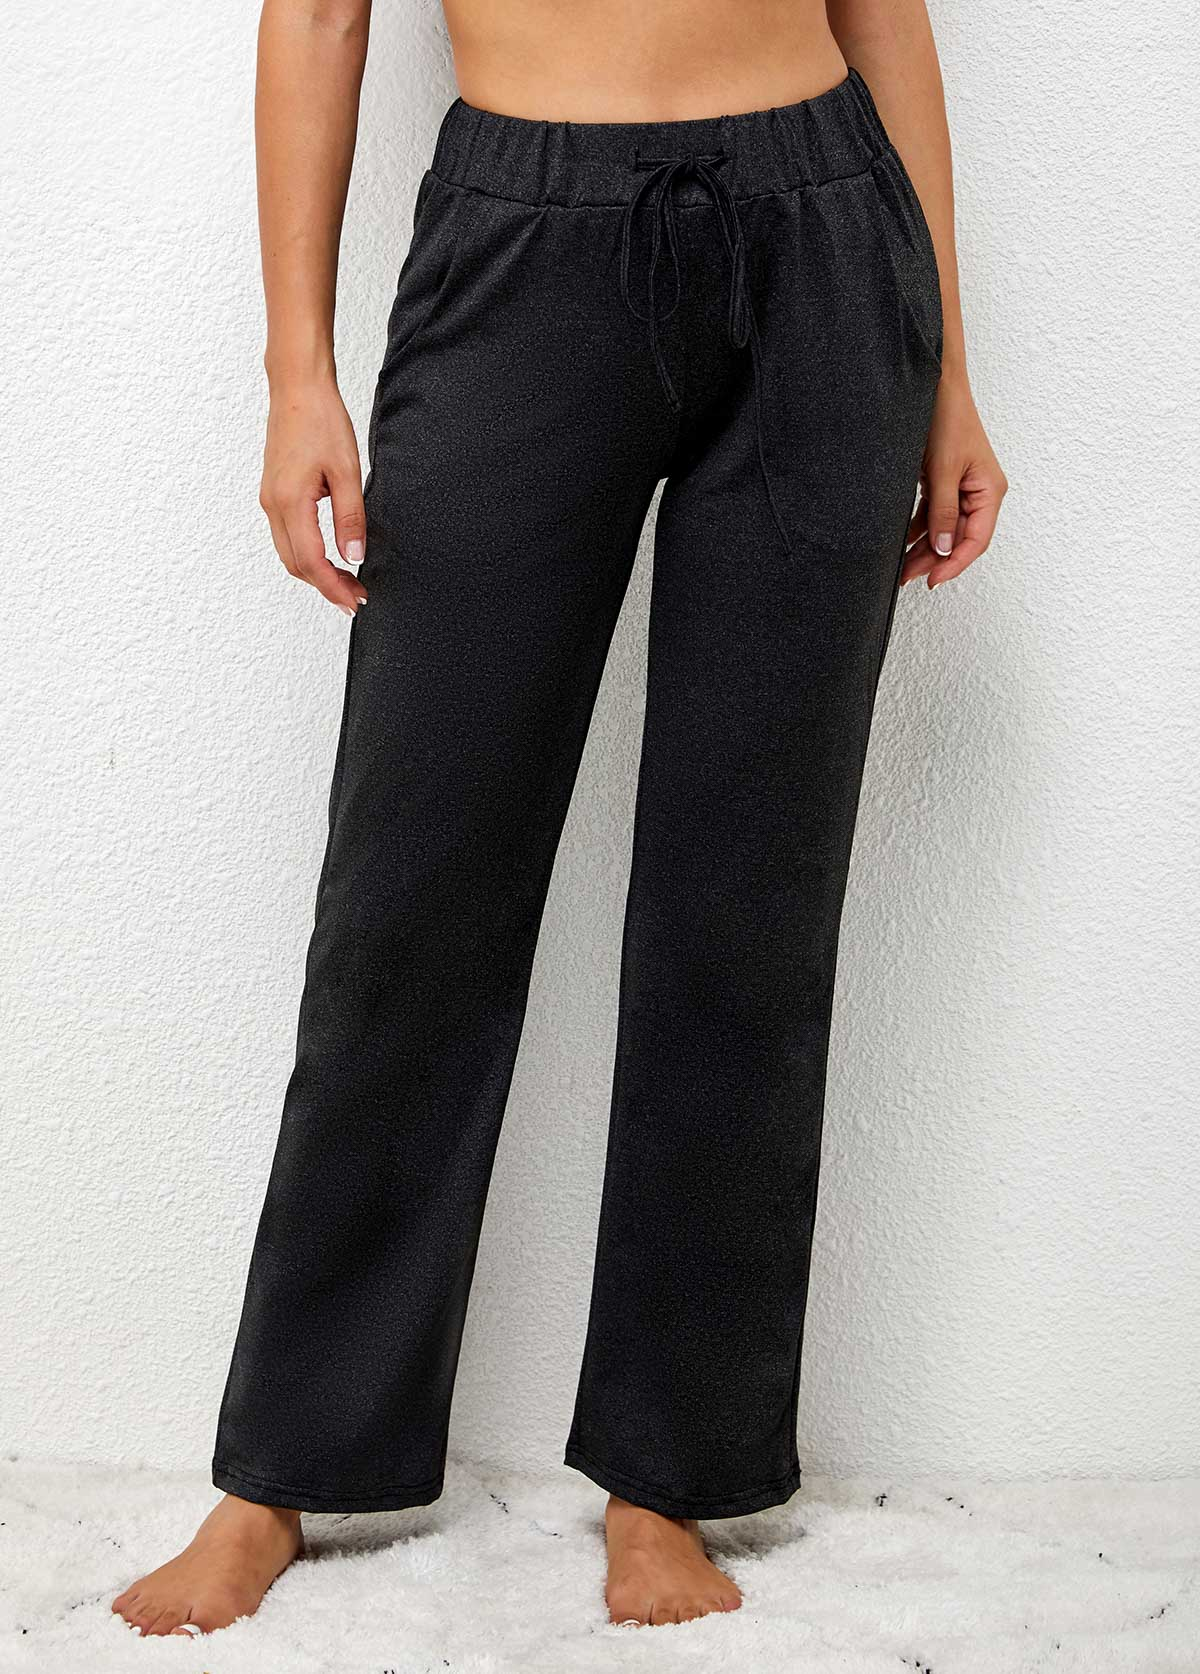 Elastic Waist High Waisted Tie Front Solid Pants